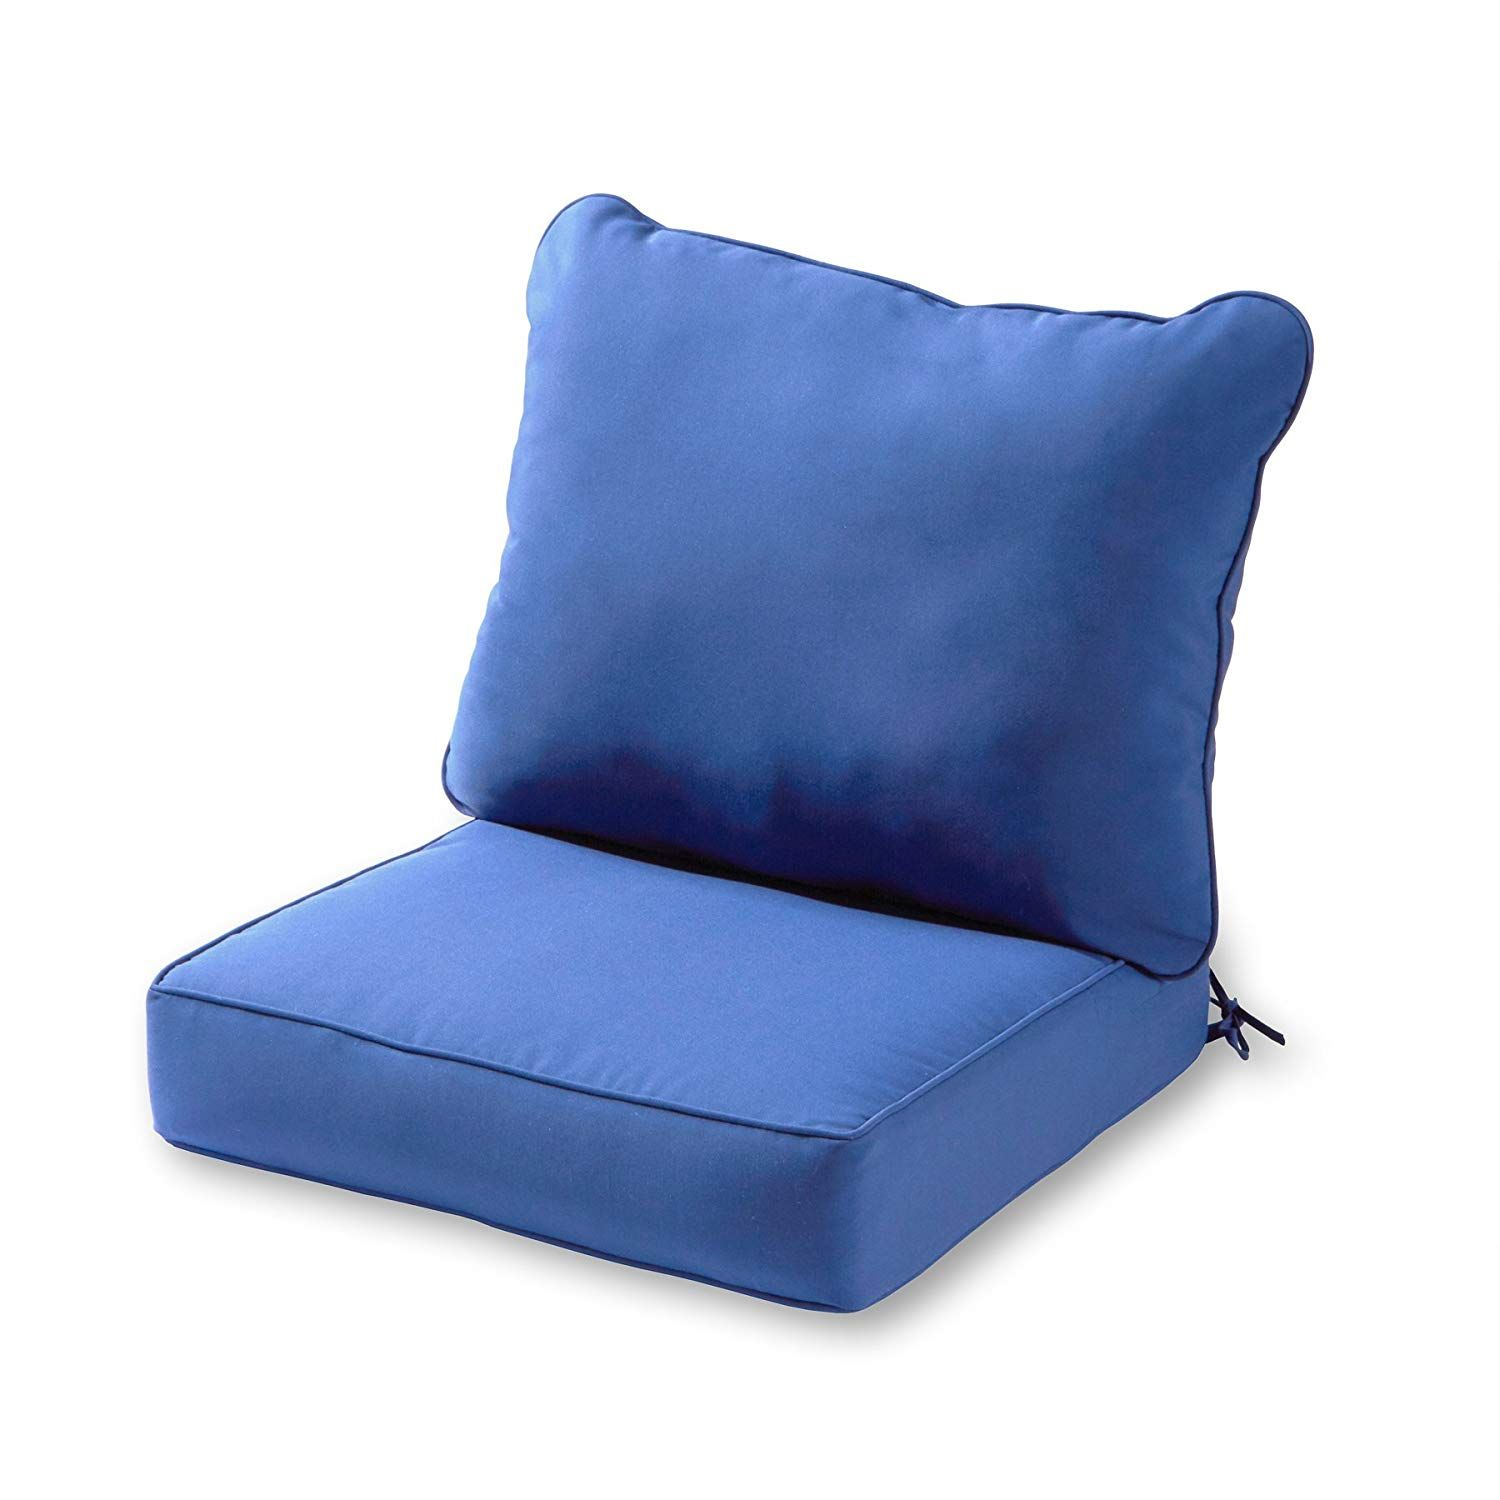 117 Reference Of Patio Replacement Cushions Deep Seating In 2020 Outdoor Deep Seat Cushions Deep Seat Cushions Patio Chair Cushions